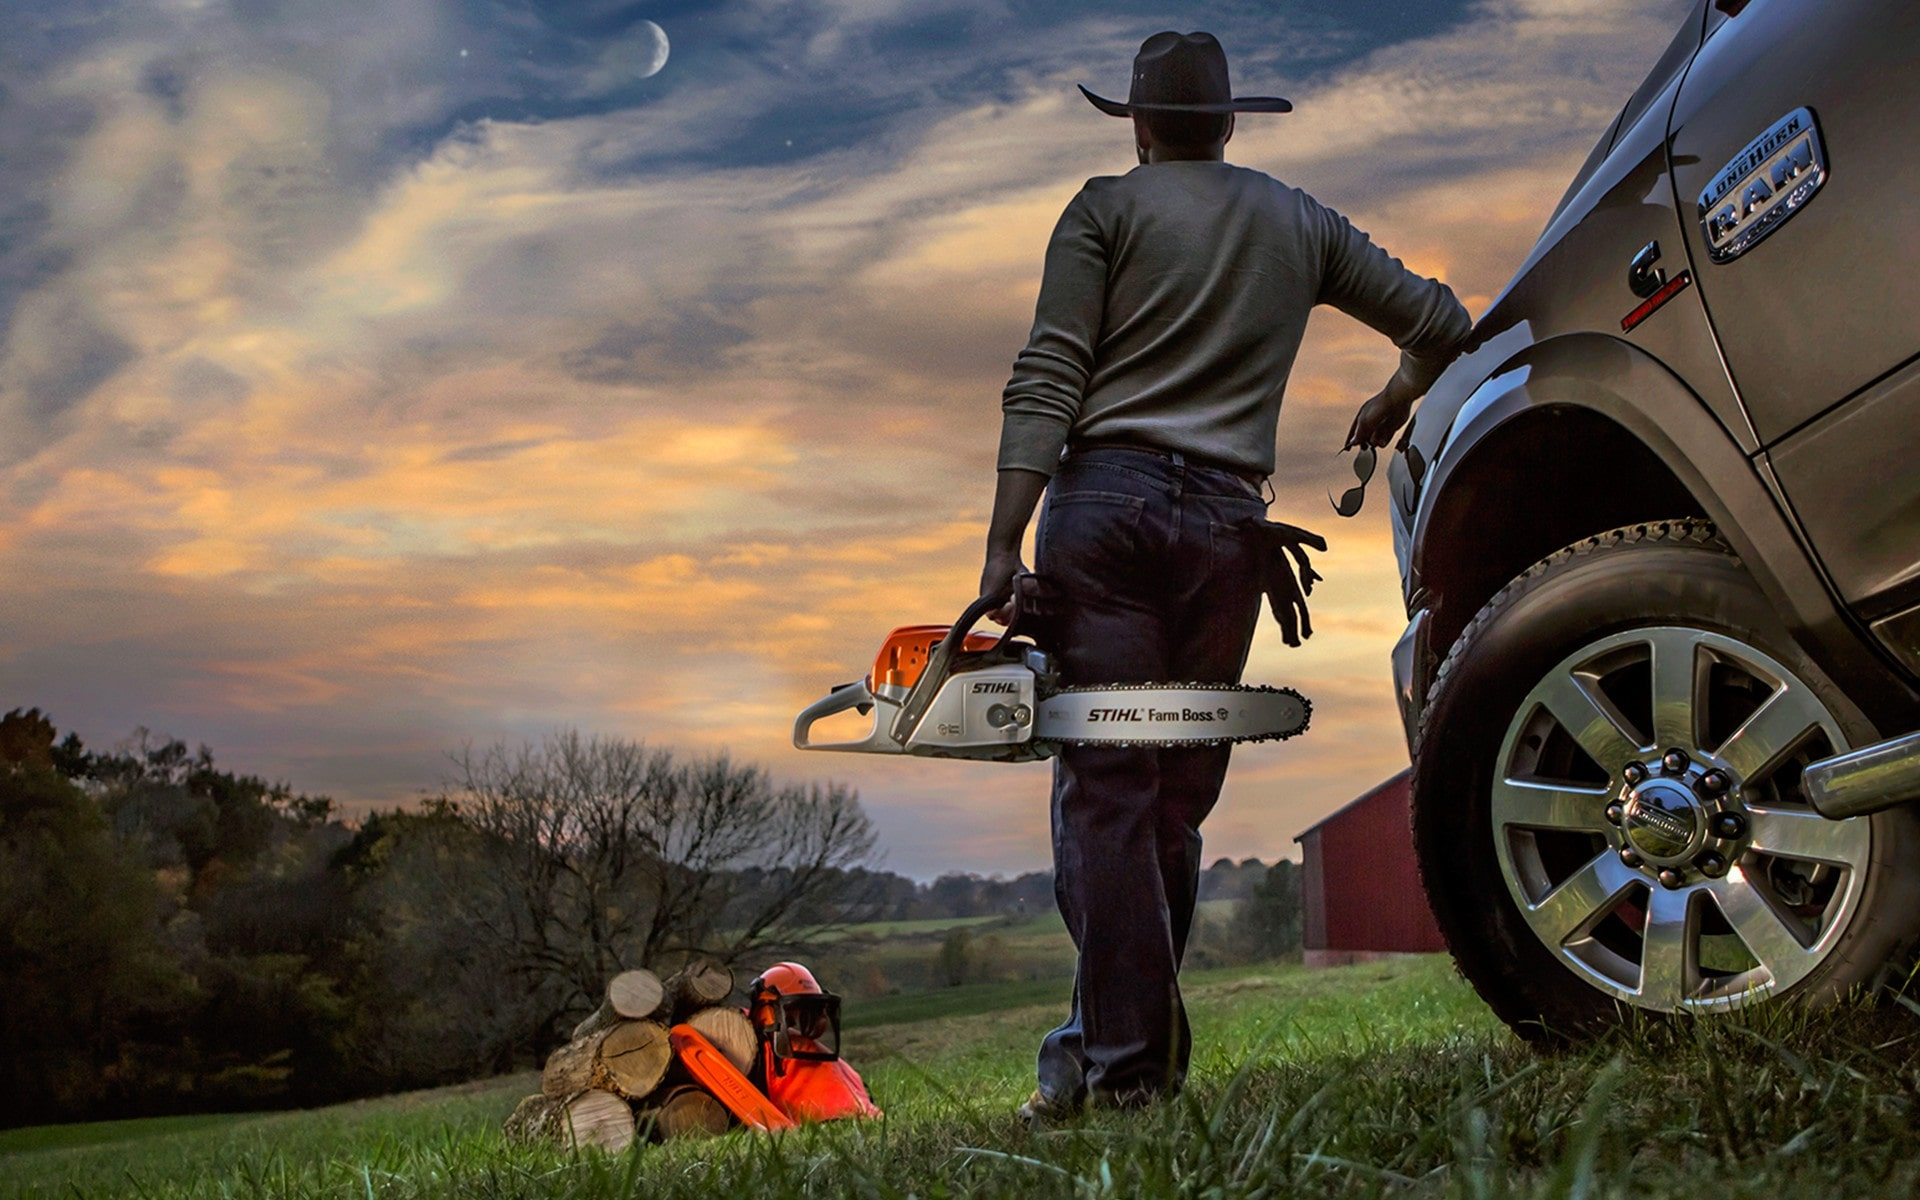 Ipswich Mower and Saw Service - Your Local STIHL Dealer